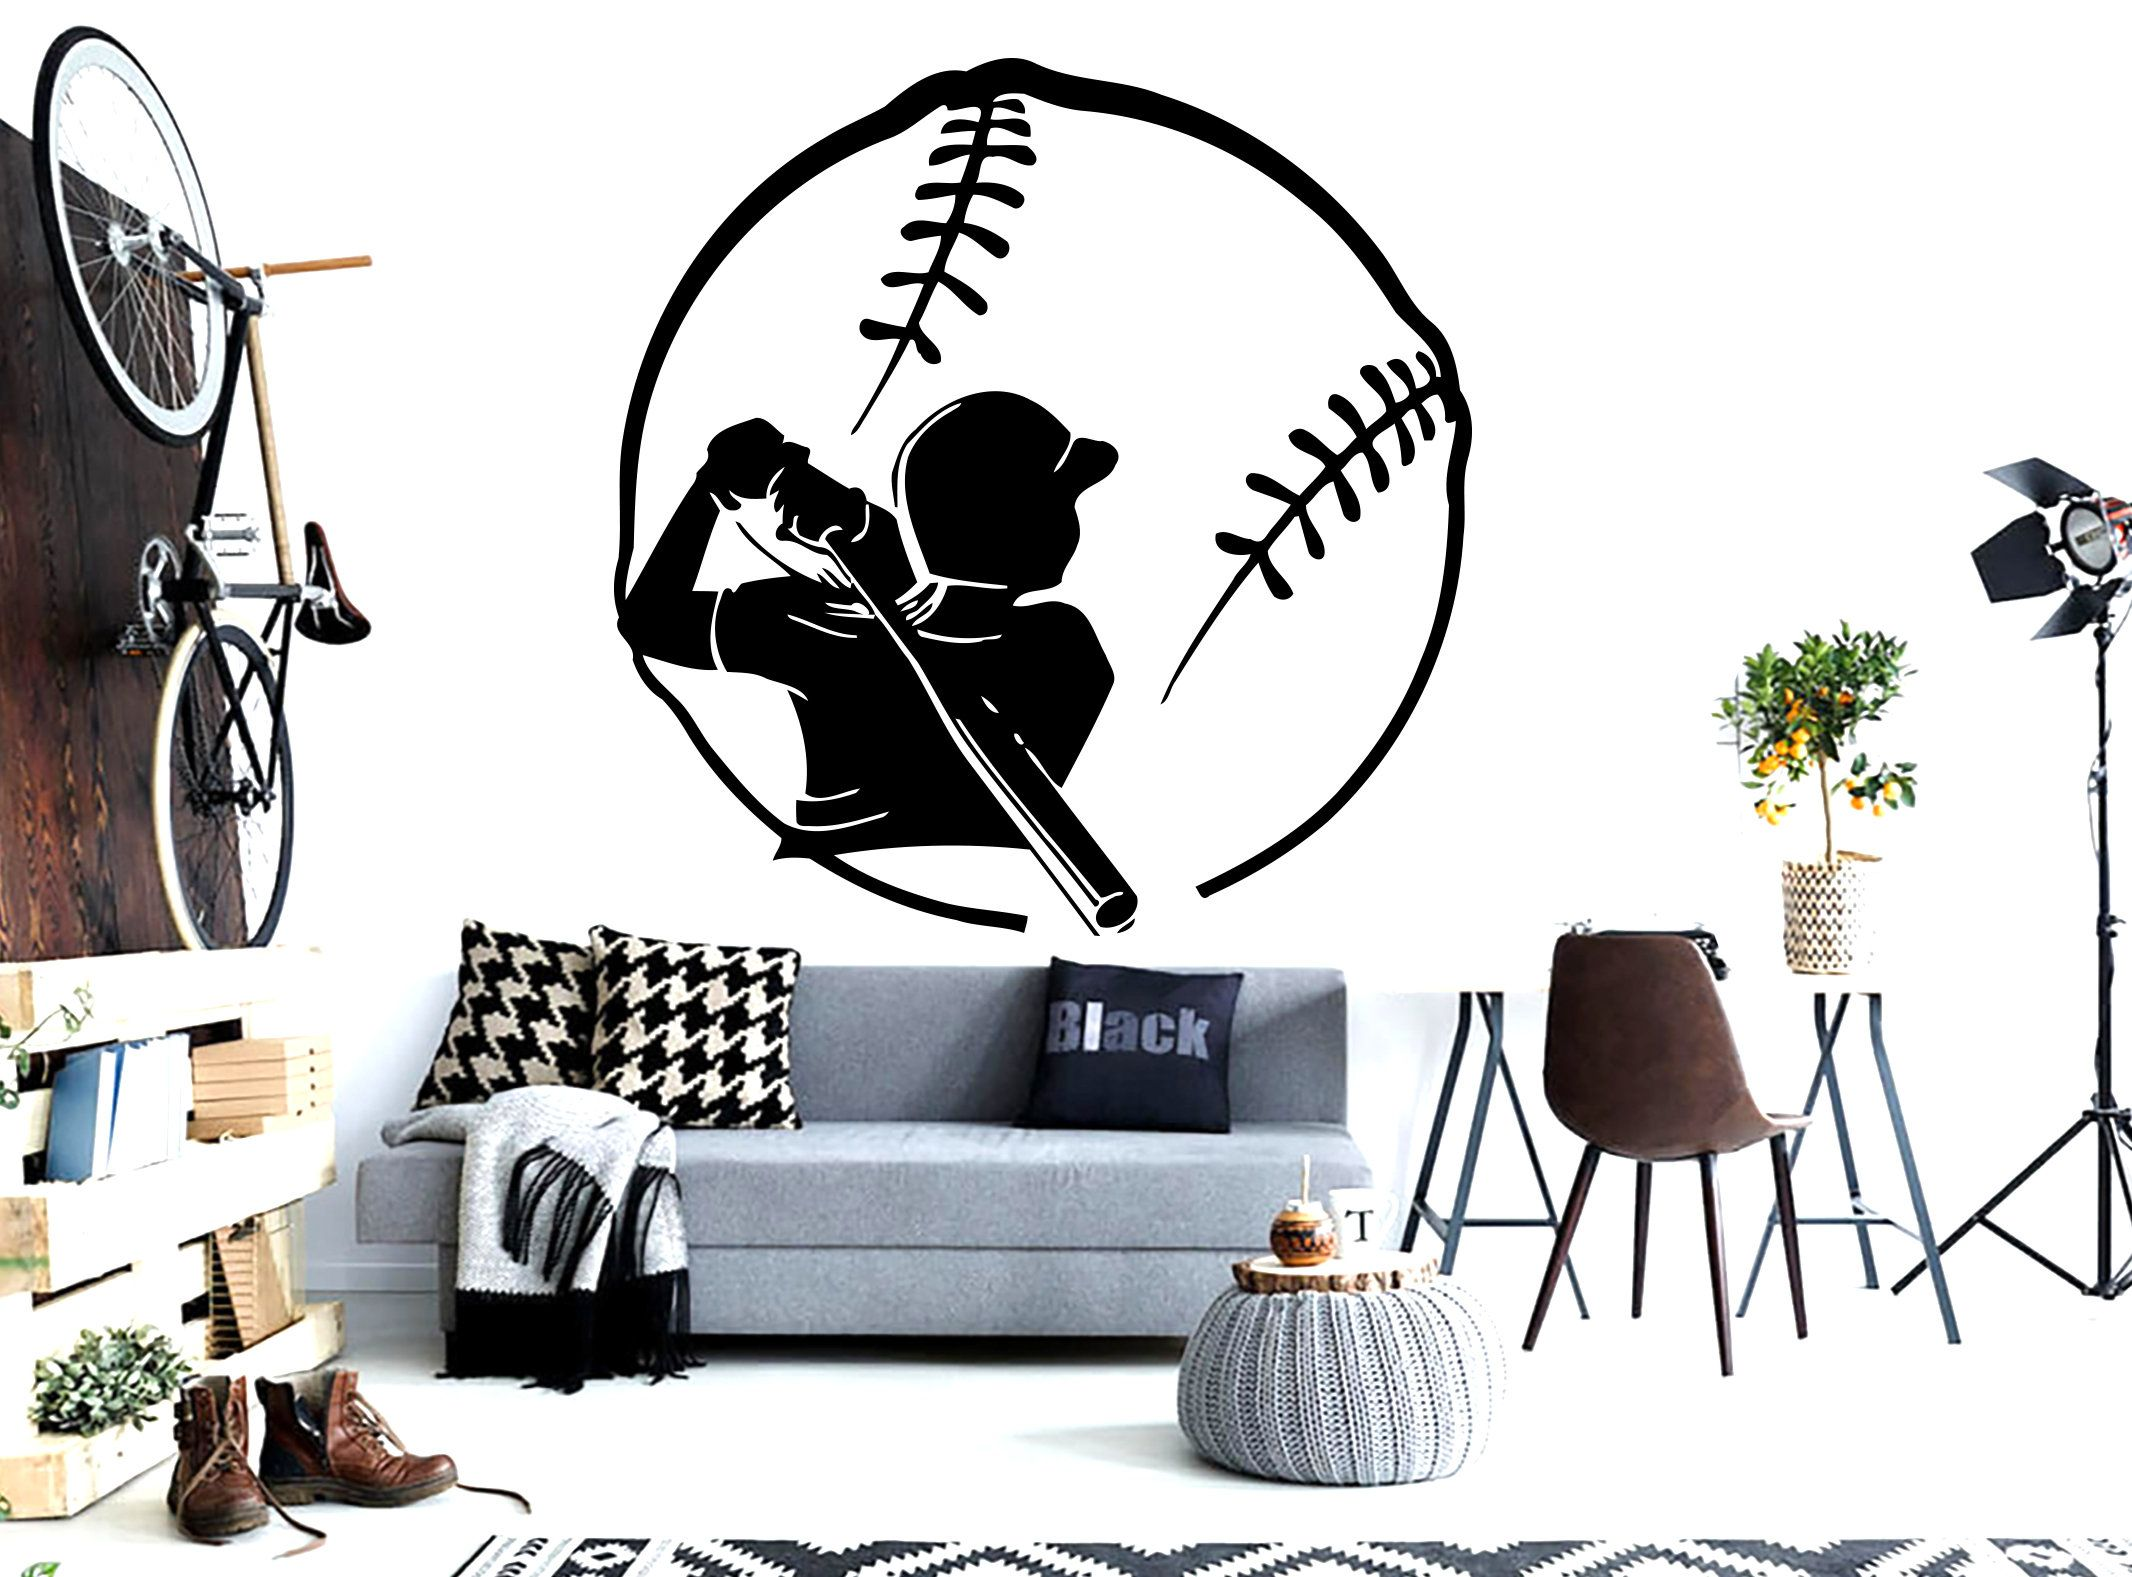 Baseball Wall Art Quote Personalized Gifts Custom Decal Wall Etsy Sports Wall Decals Baseball Wall Art Kids Room Wall Stickers